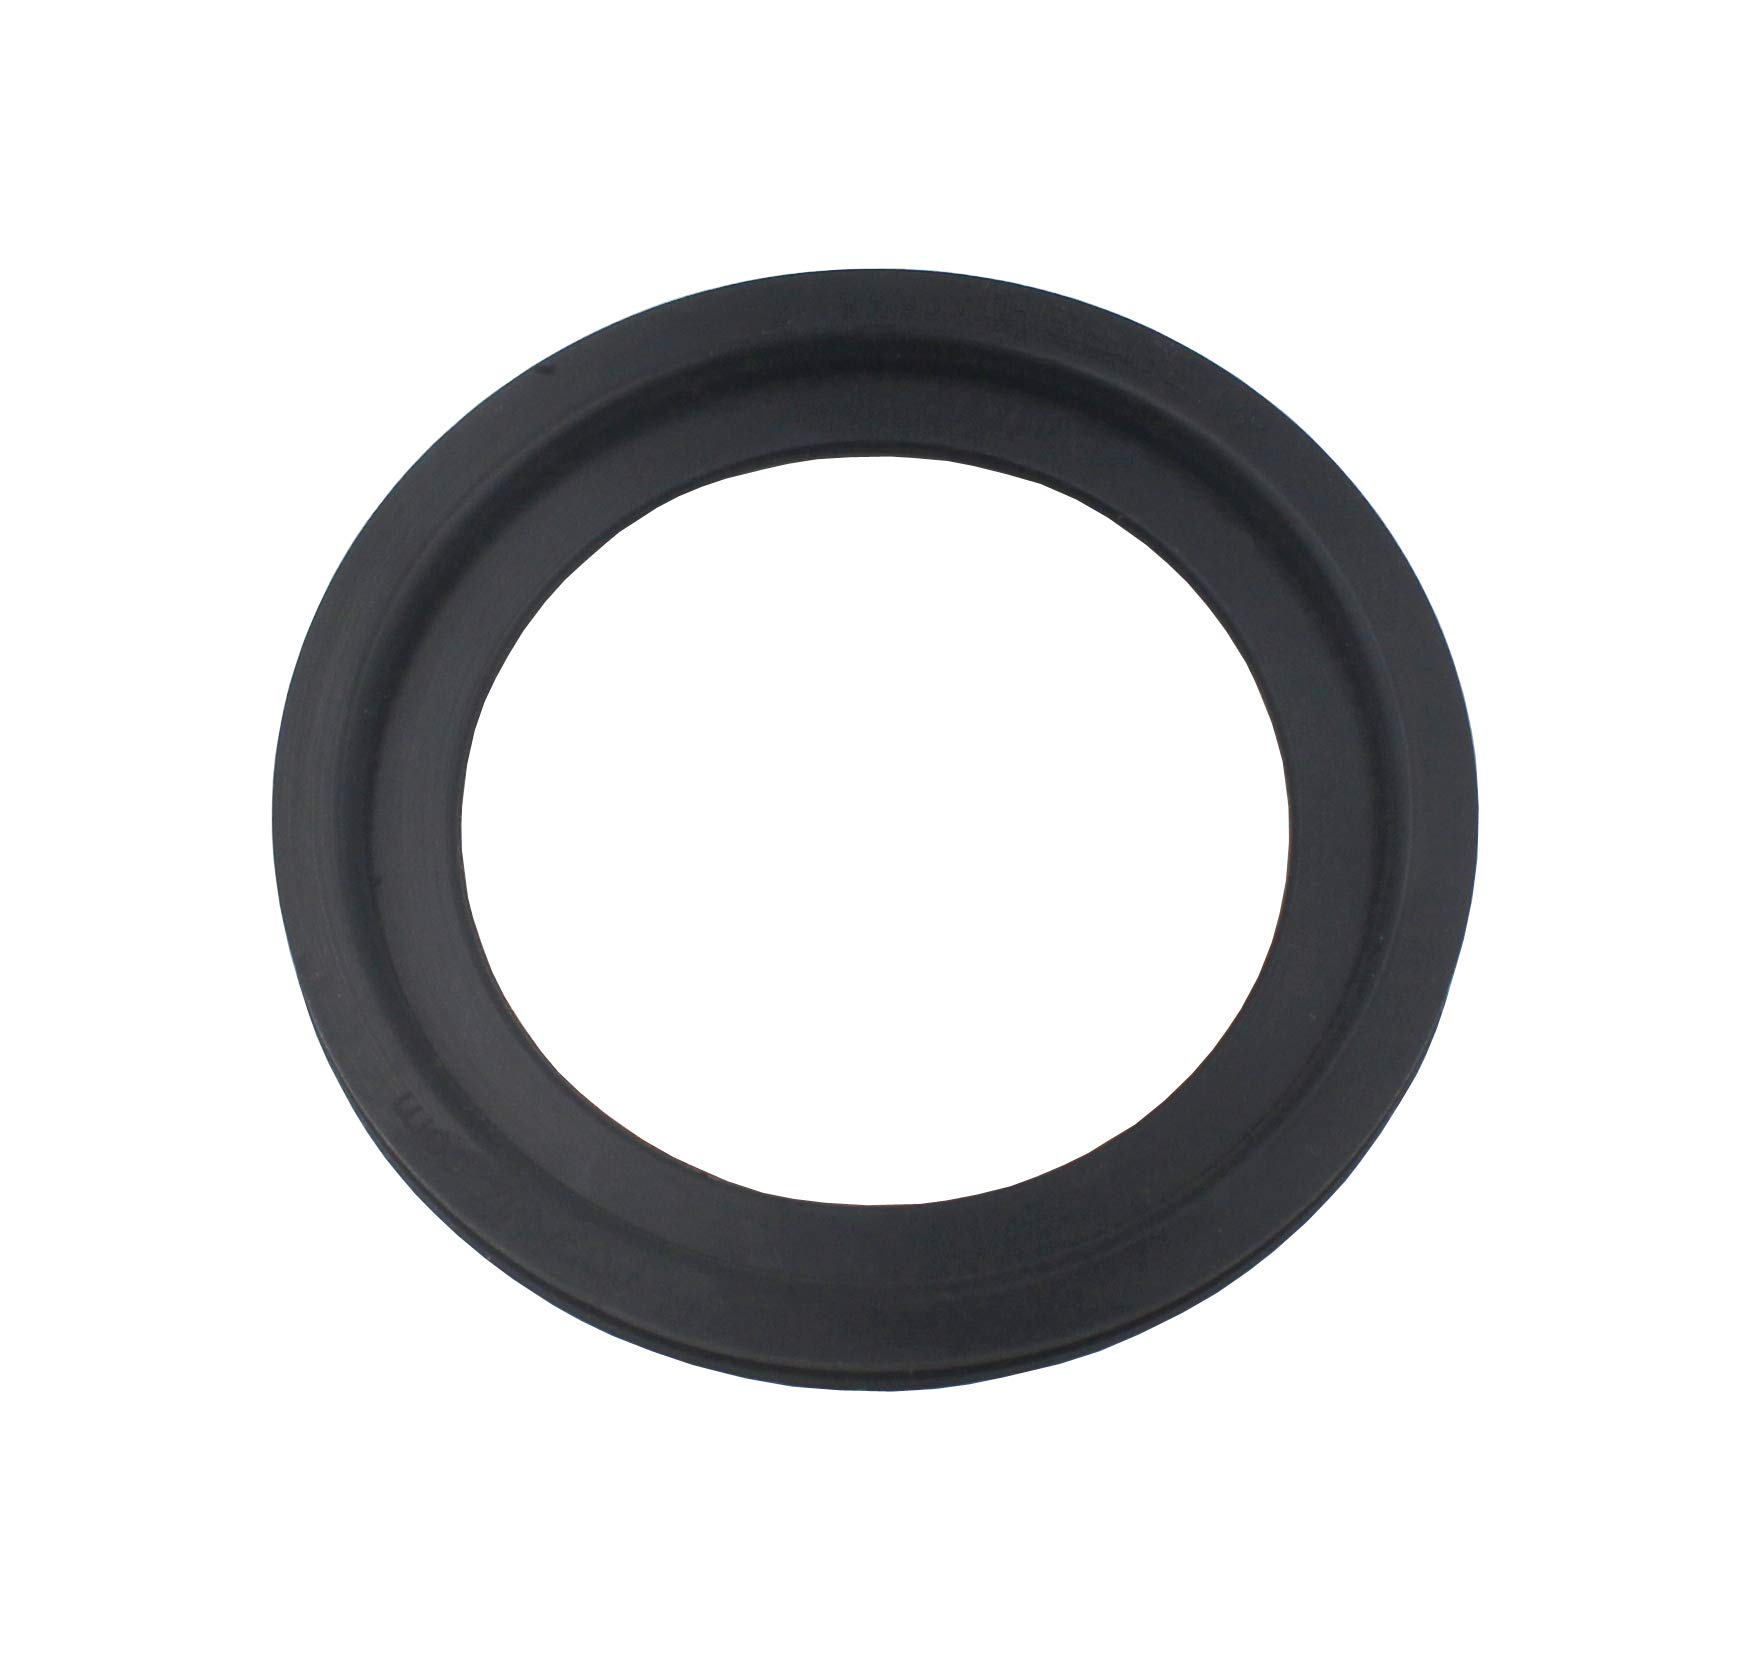 iFJF Sealand Toilet Flush Ball Seal #385311658 Replace for Dometic Compatible with The Models 300, 310 301,and 320 RV, Motorhome Camper and Trailer Toilets by iFJF